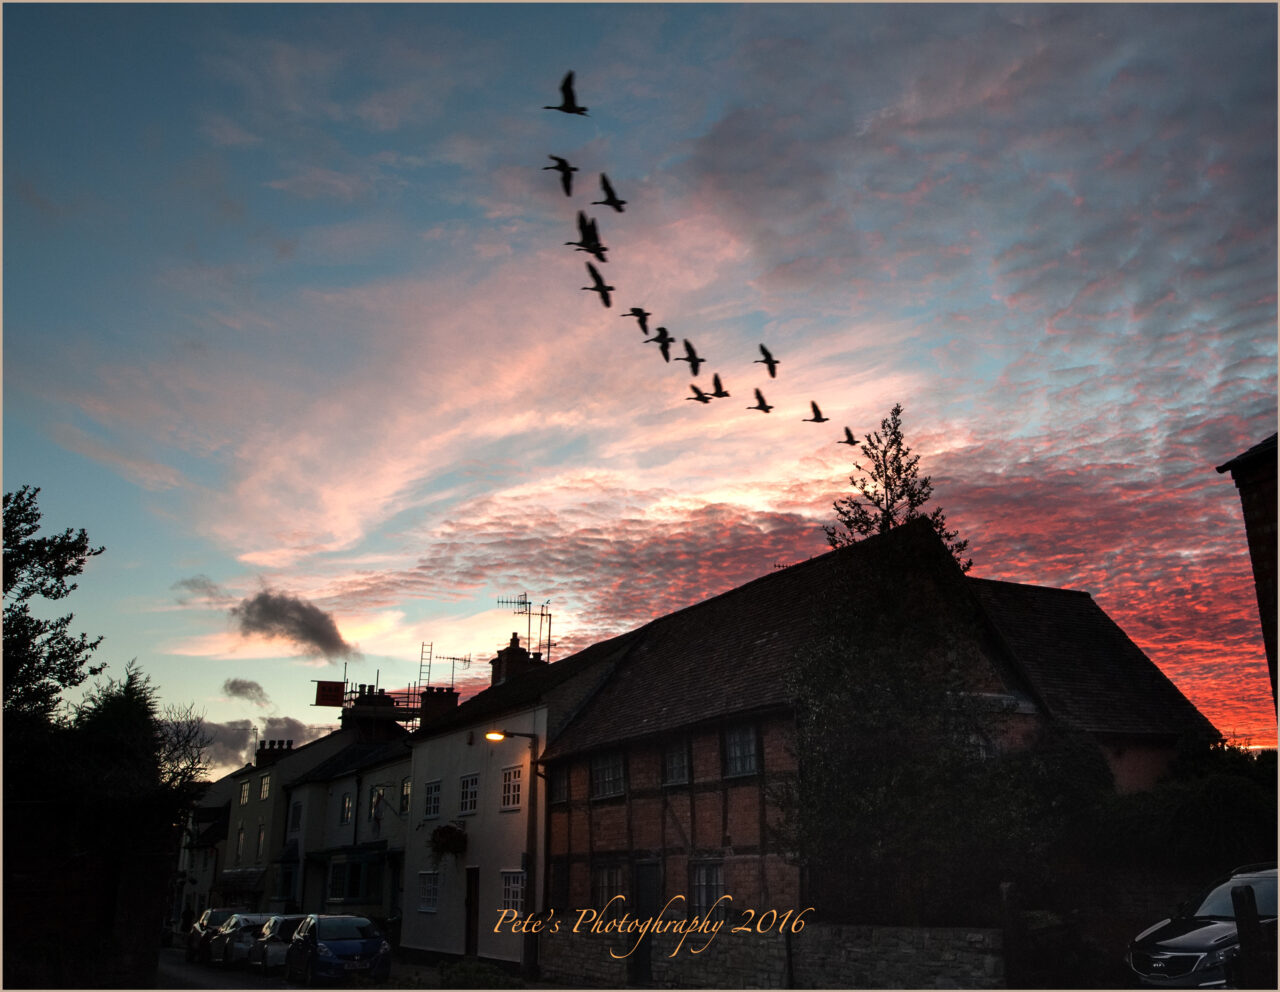 Geese flying over Bidford